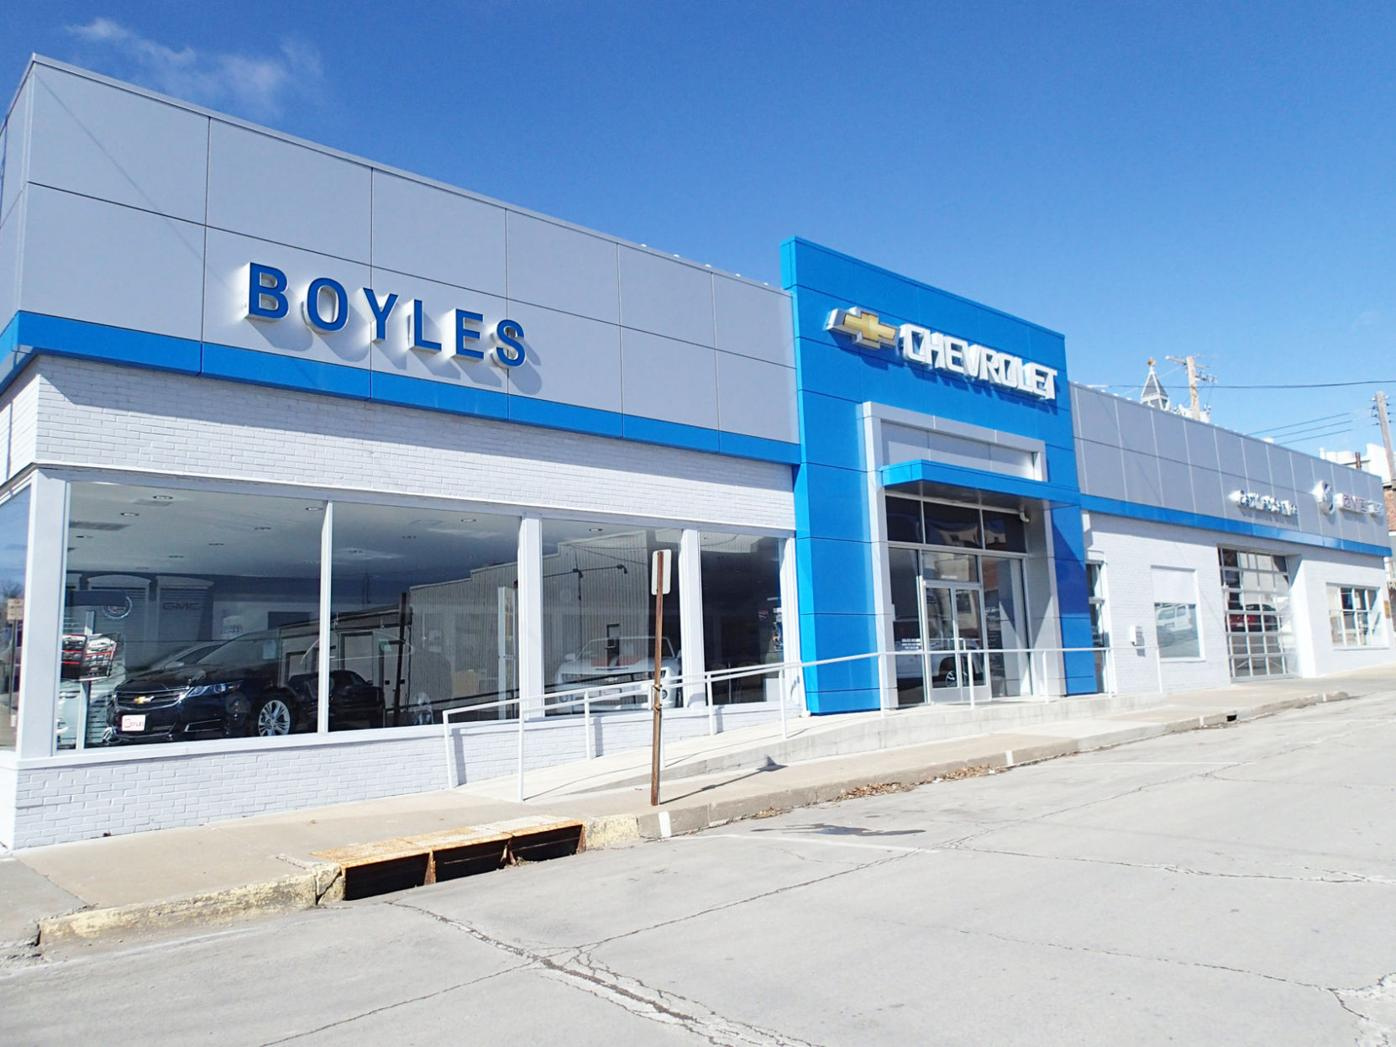 boyles family selling gm dealership business maryville daily forum boyles family selling gm dealership